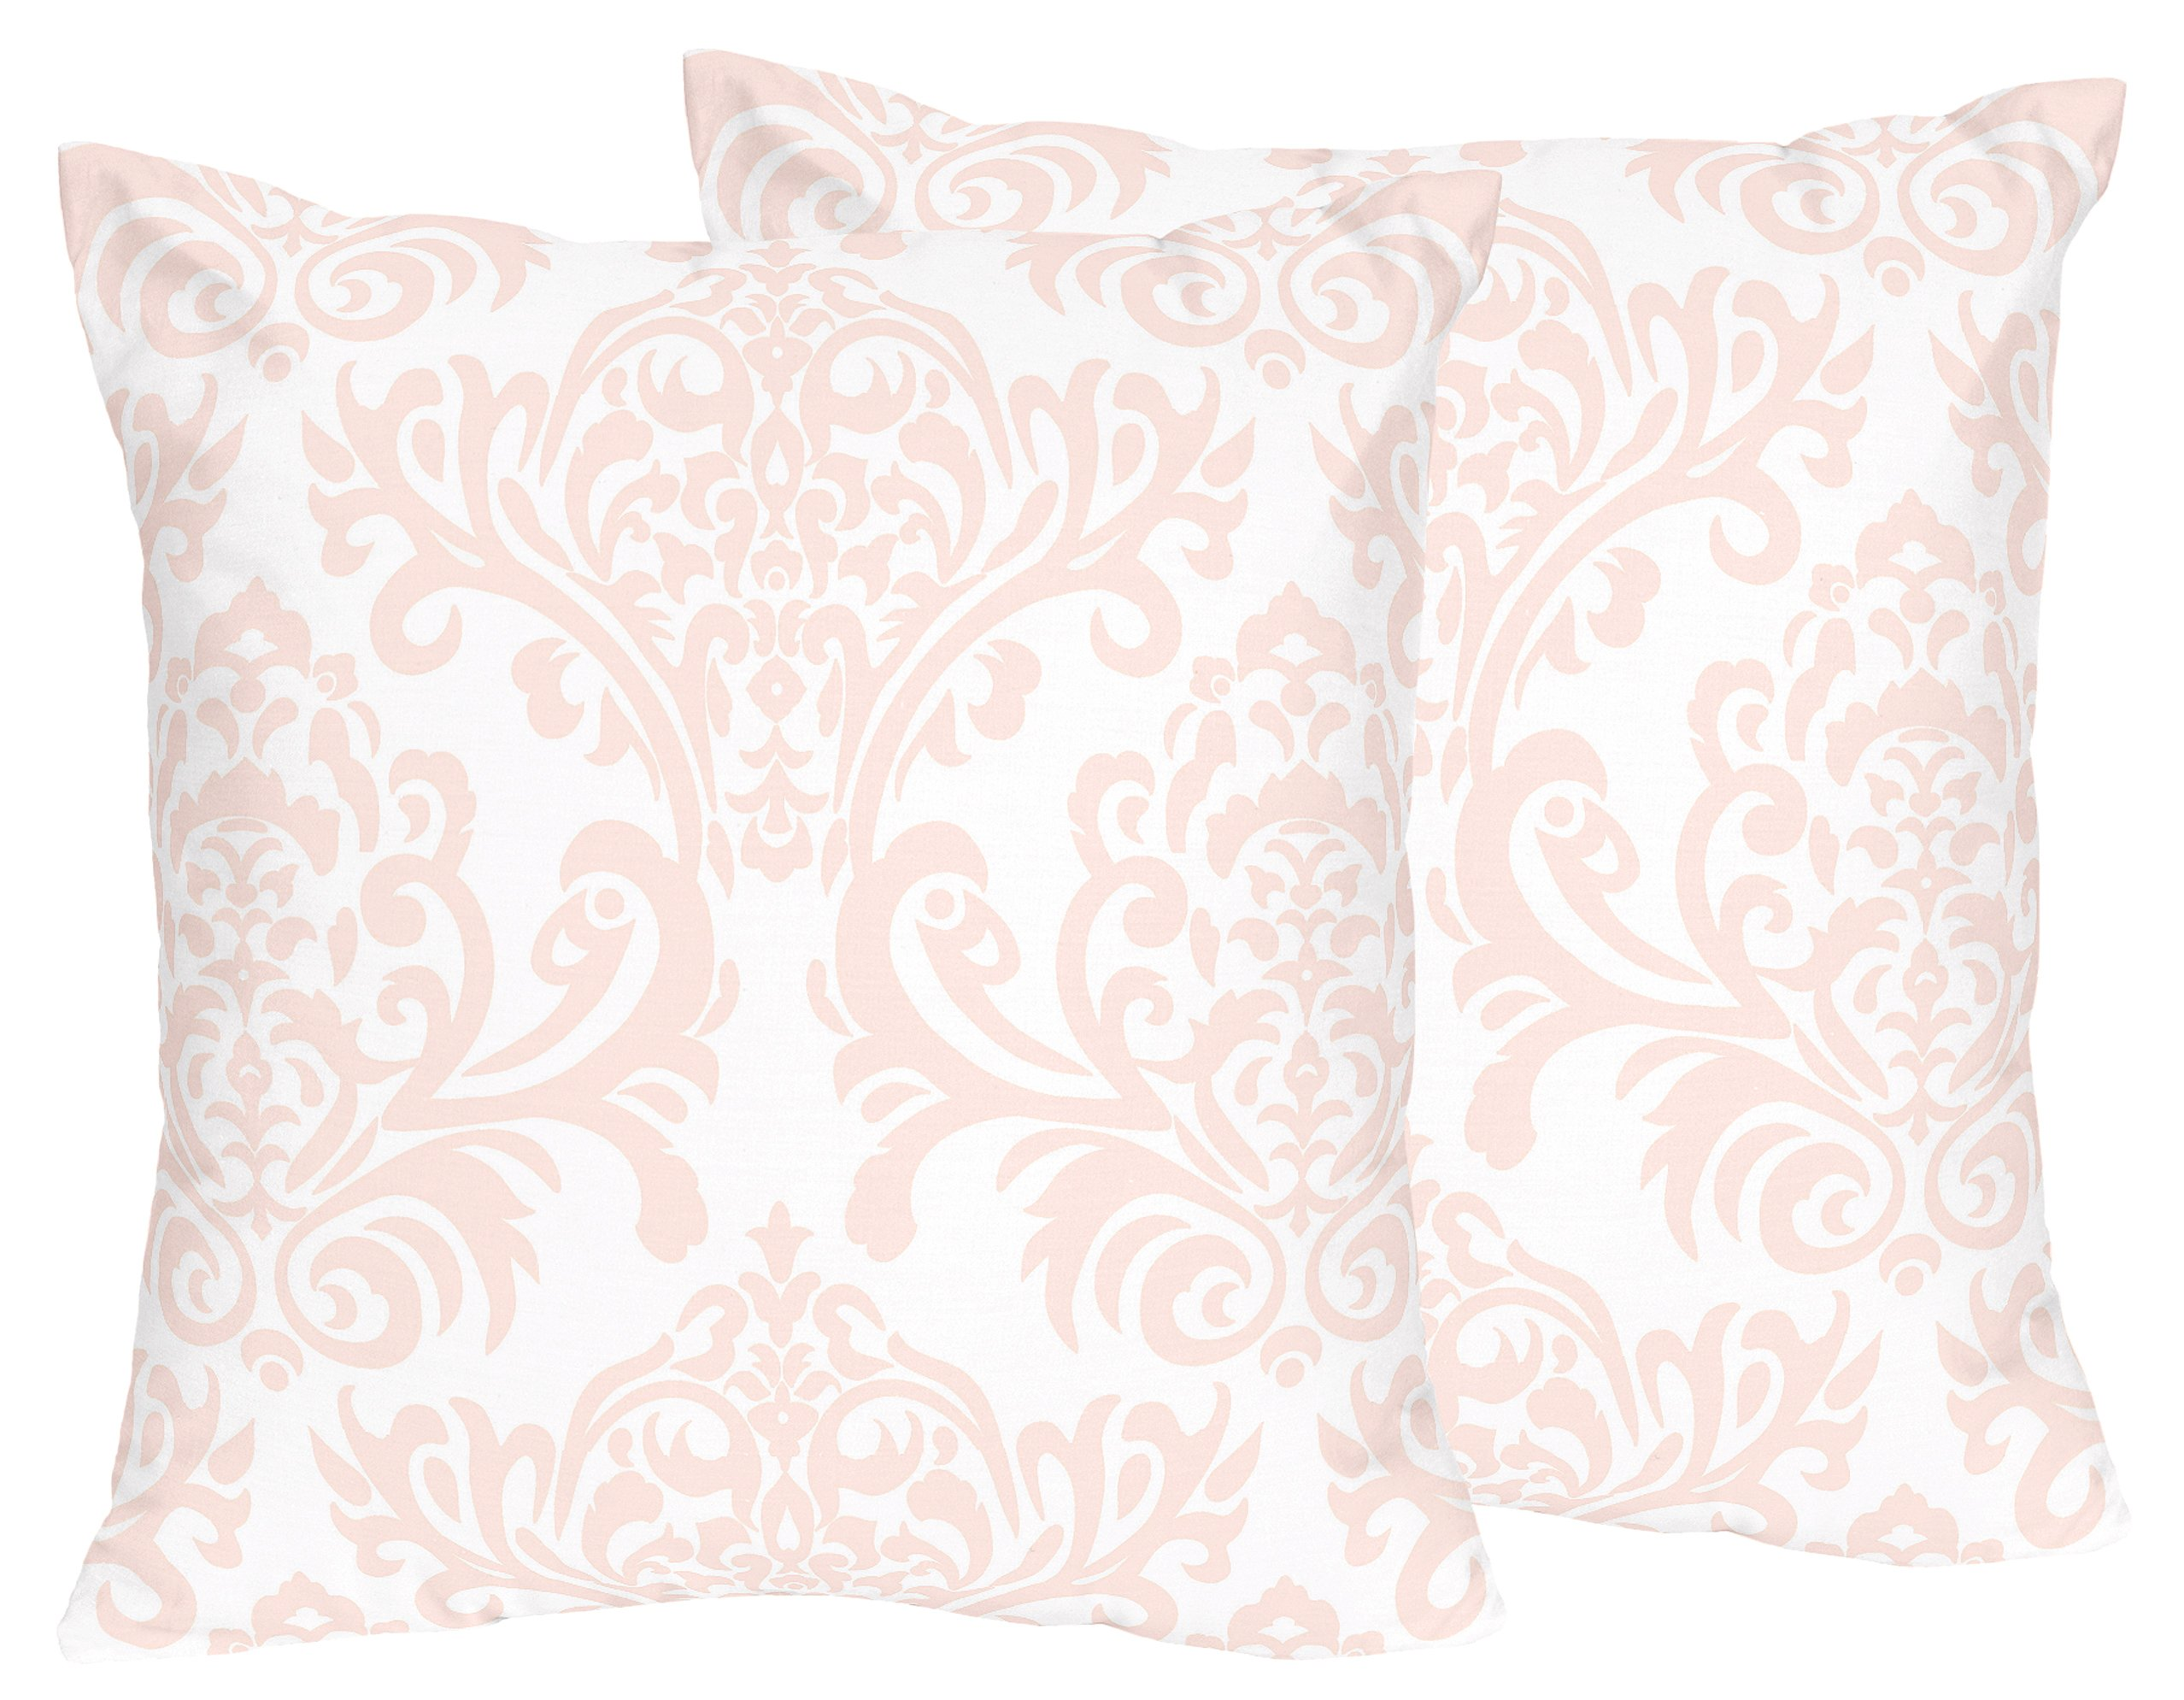 Sweet JoJo Designs 2-Piece Blush Pink and White Damask Girls Decorative Accent Throw Pillow for Amelia Bedding Collection